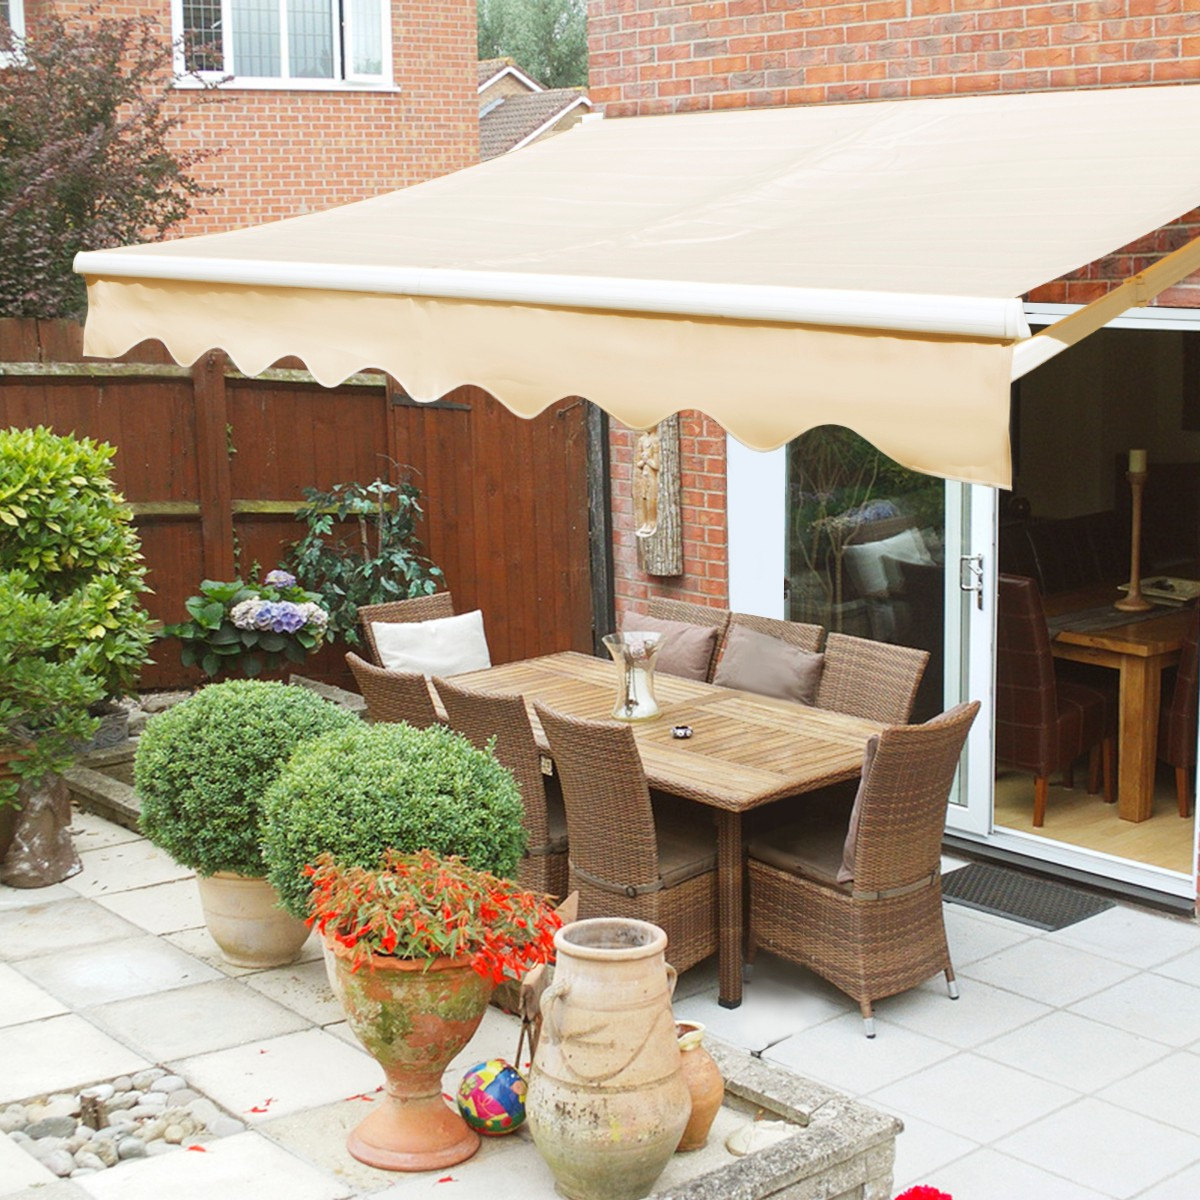 XtremepowerUS 12'x10' Retractable Patio Awning, Manual,Tan - Walmart.com